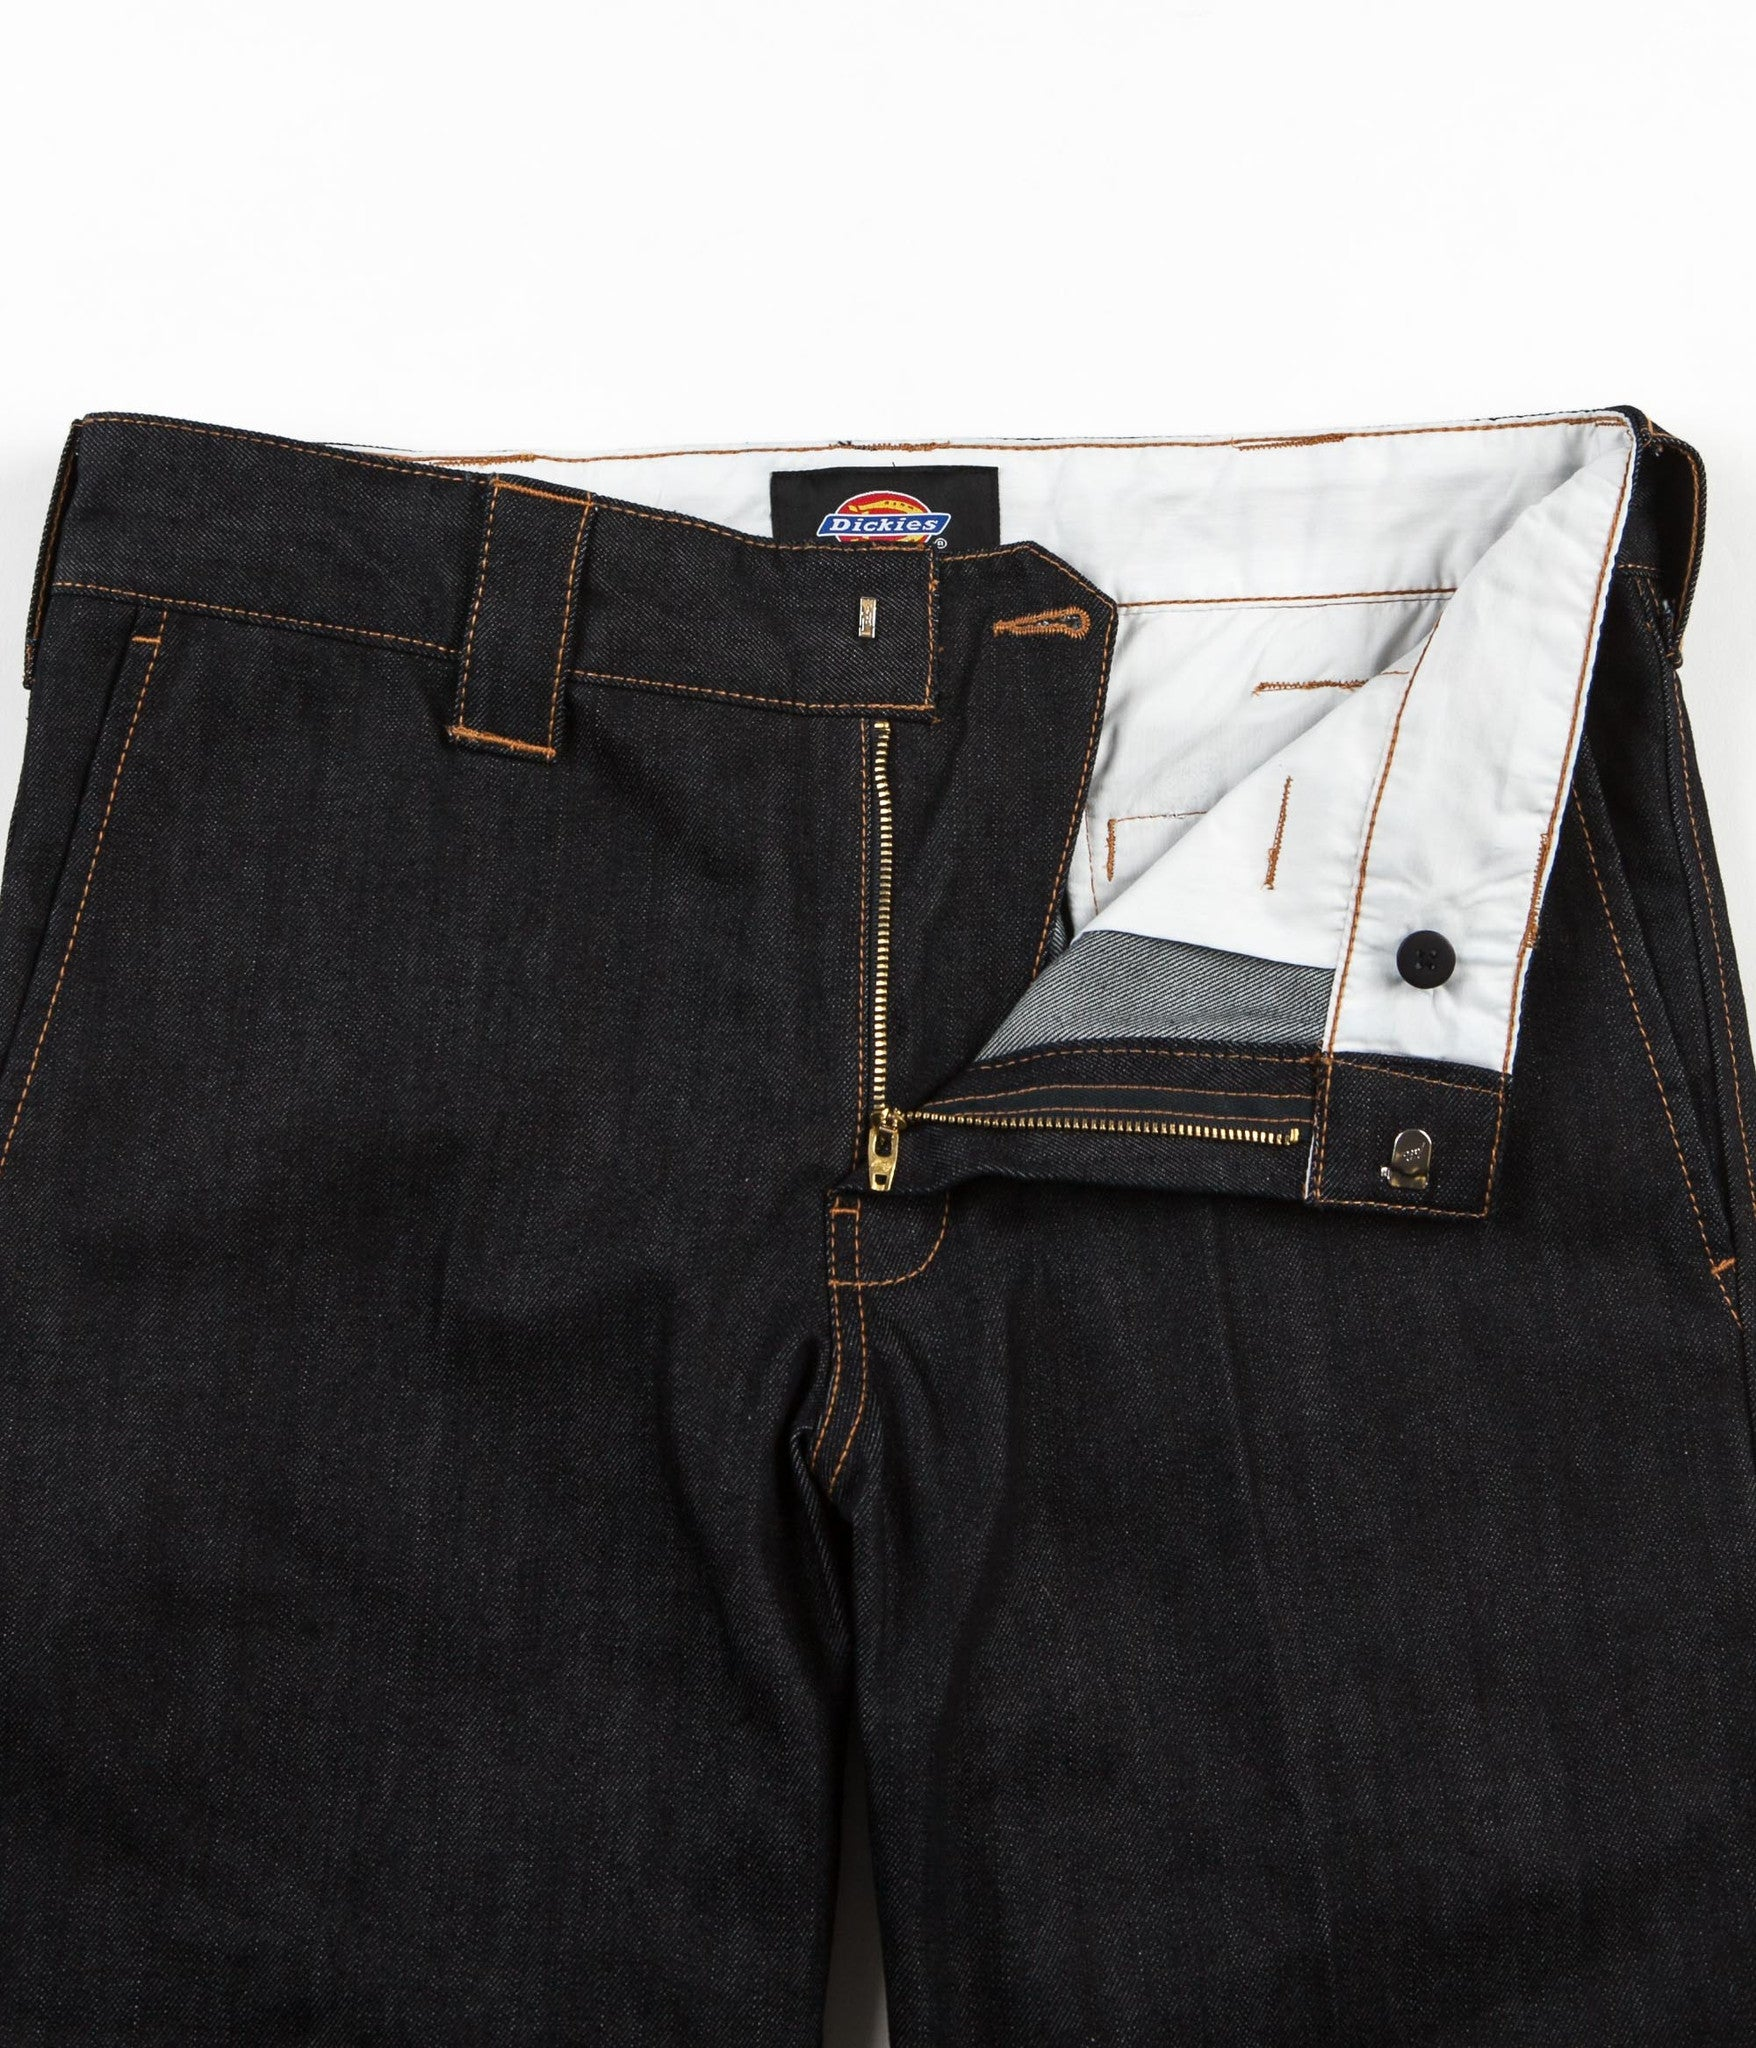 Dickies 873 Denim Work Trousers - Rinsed